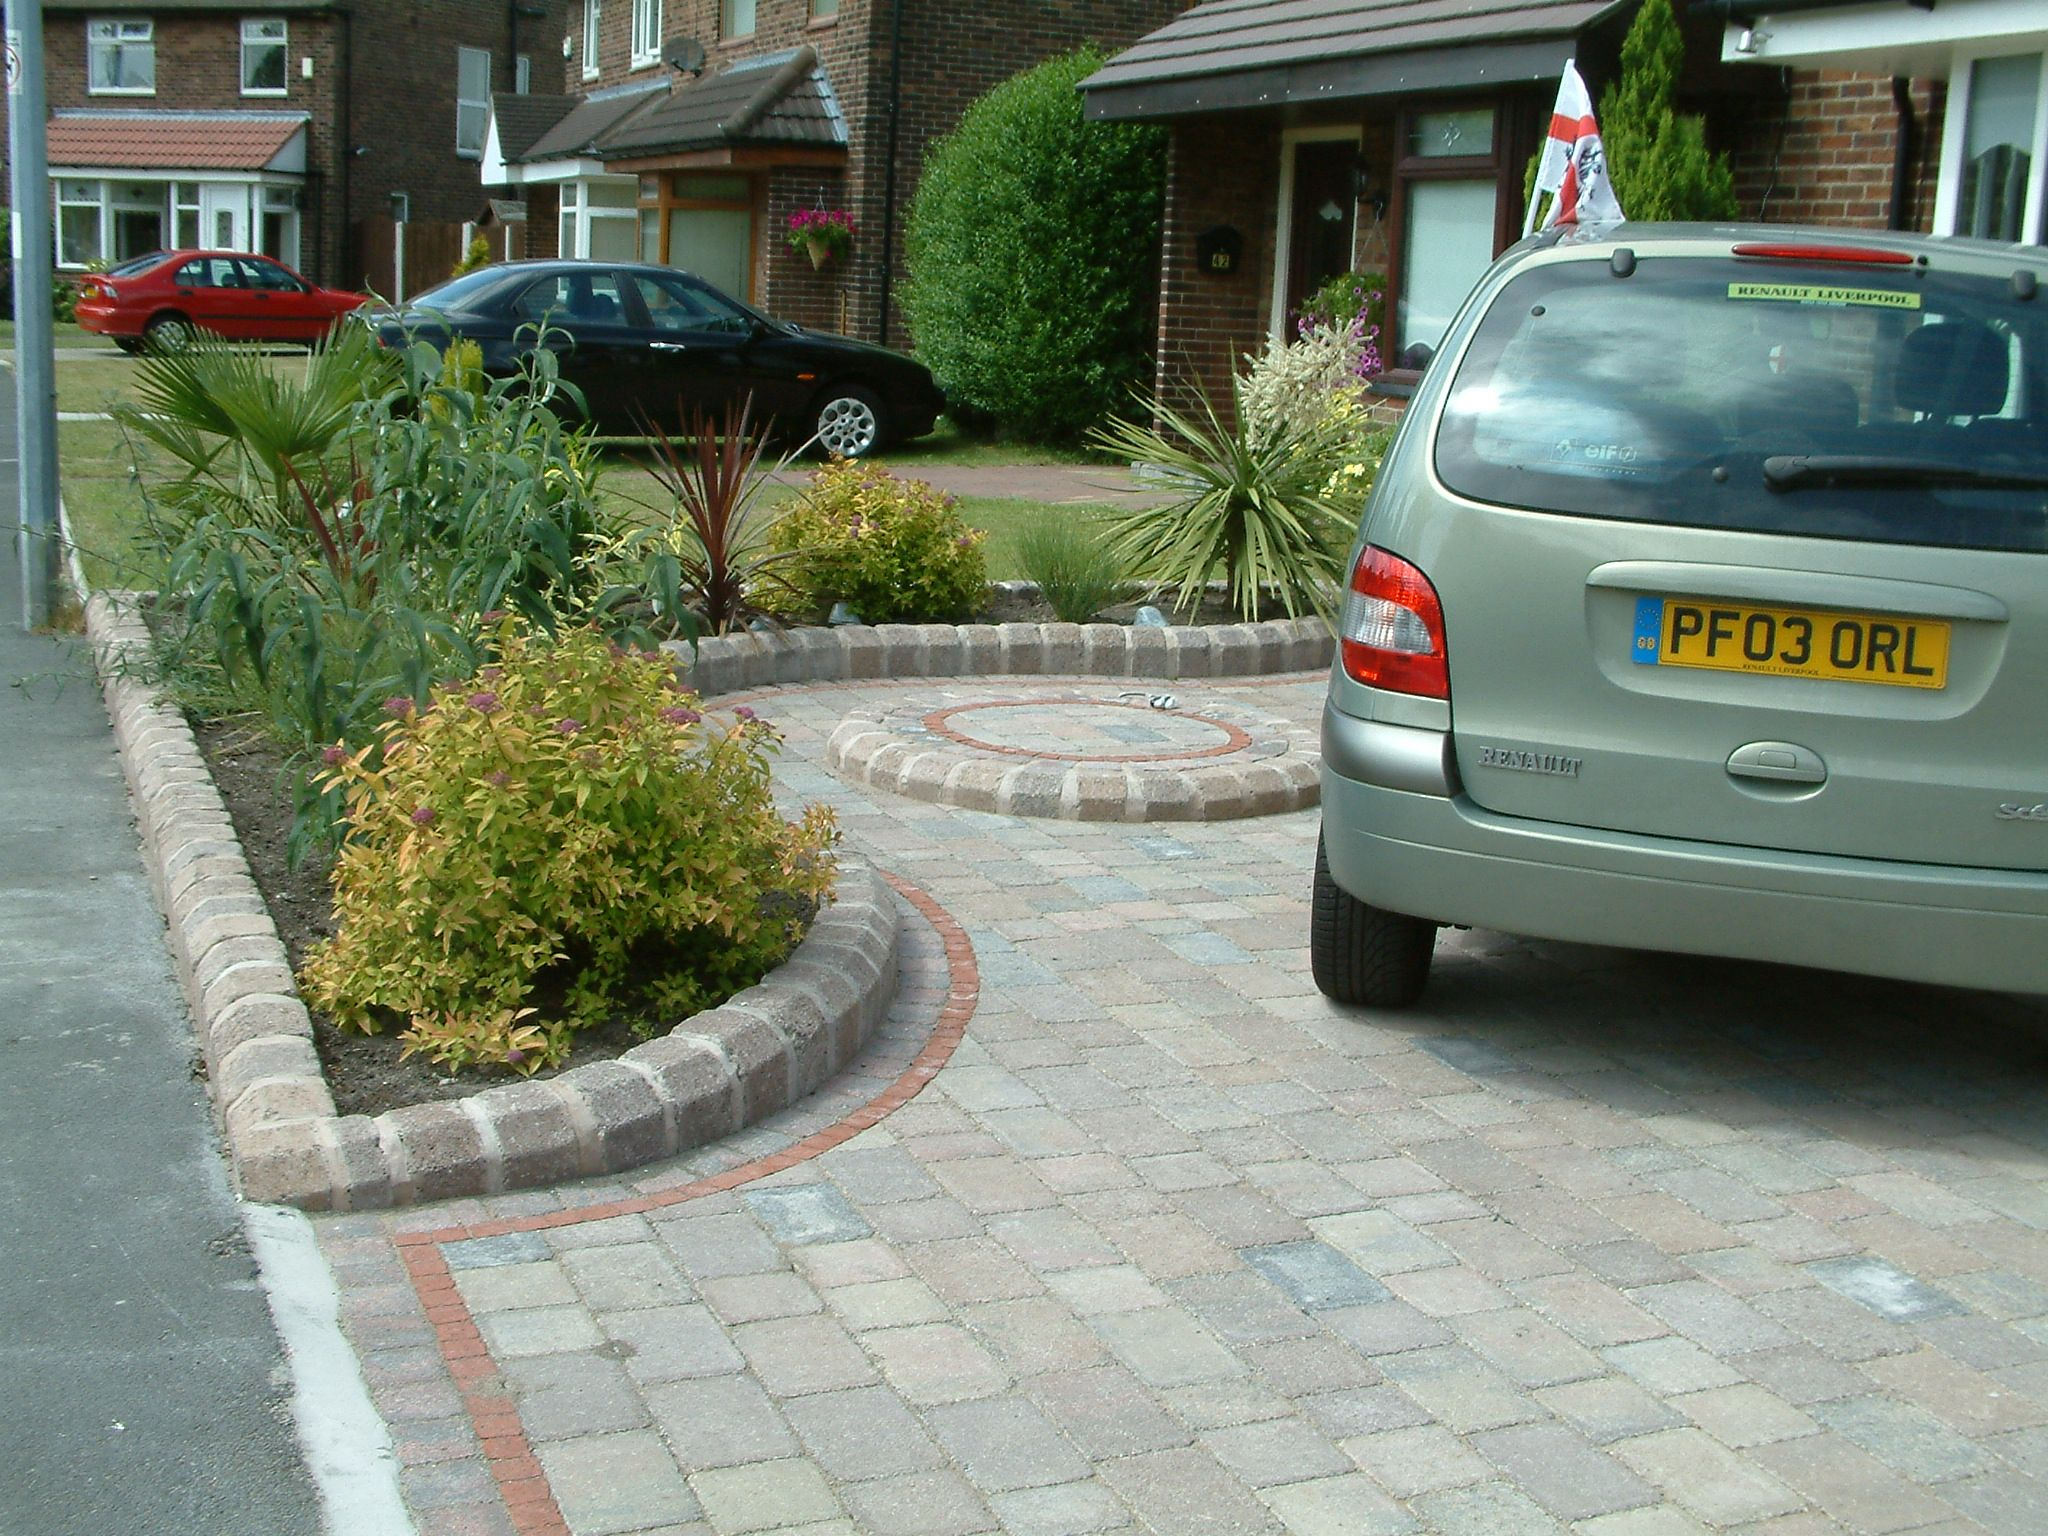 Front garden ideas with parking - Top 30 Front Garden Ideas With Parking Home Decor Ideas Uk